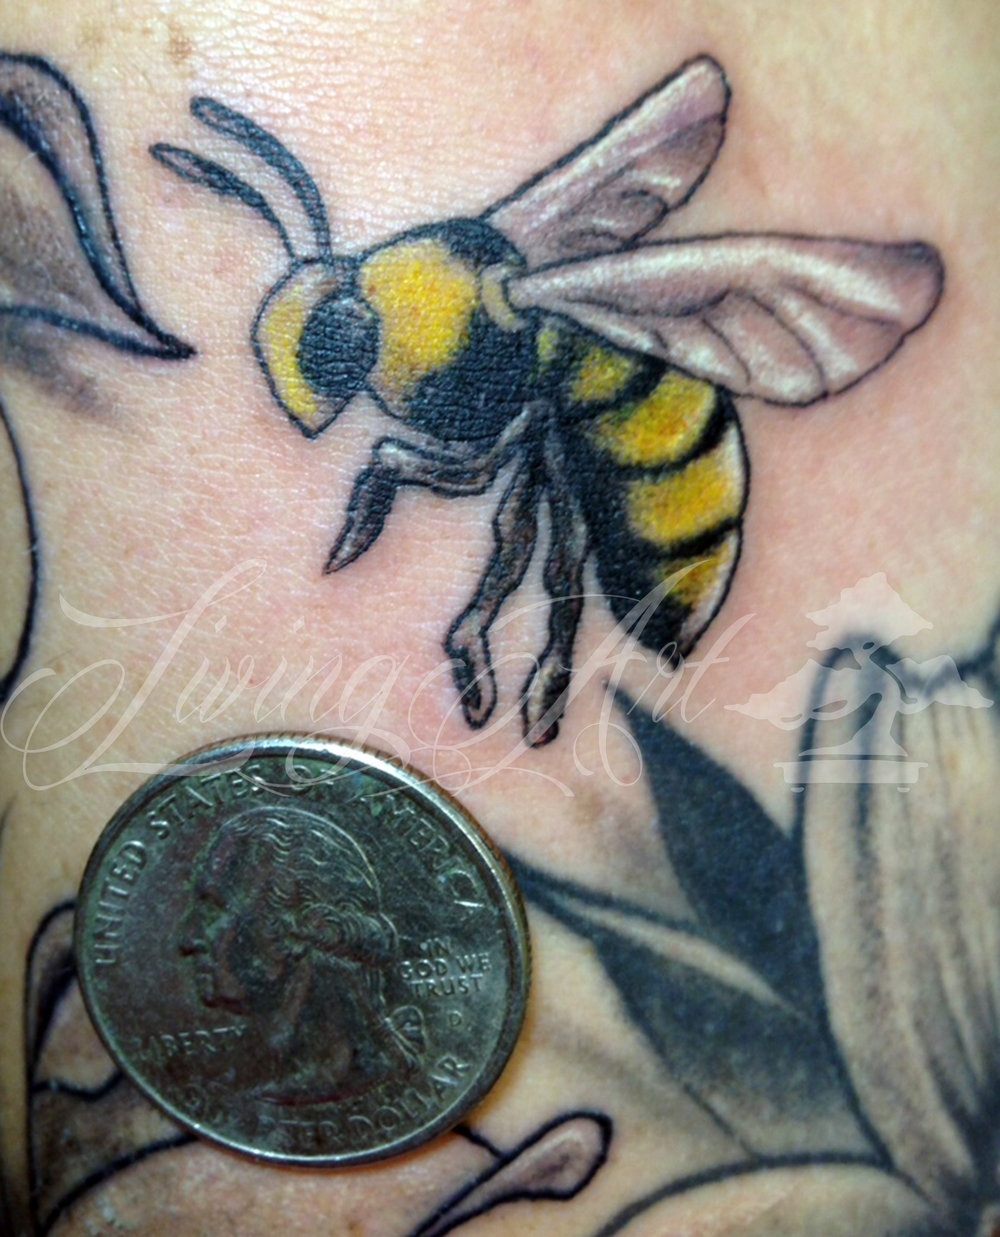 chris owen tattoo_micro tattoo.jpg